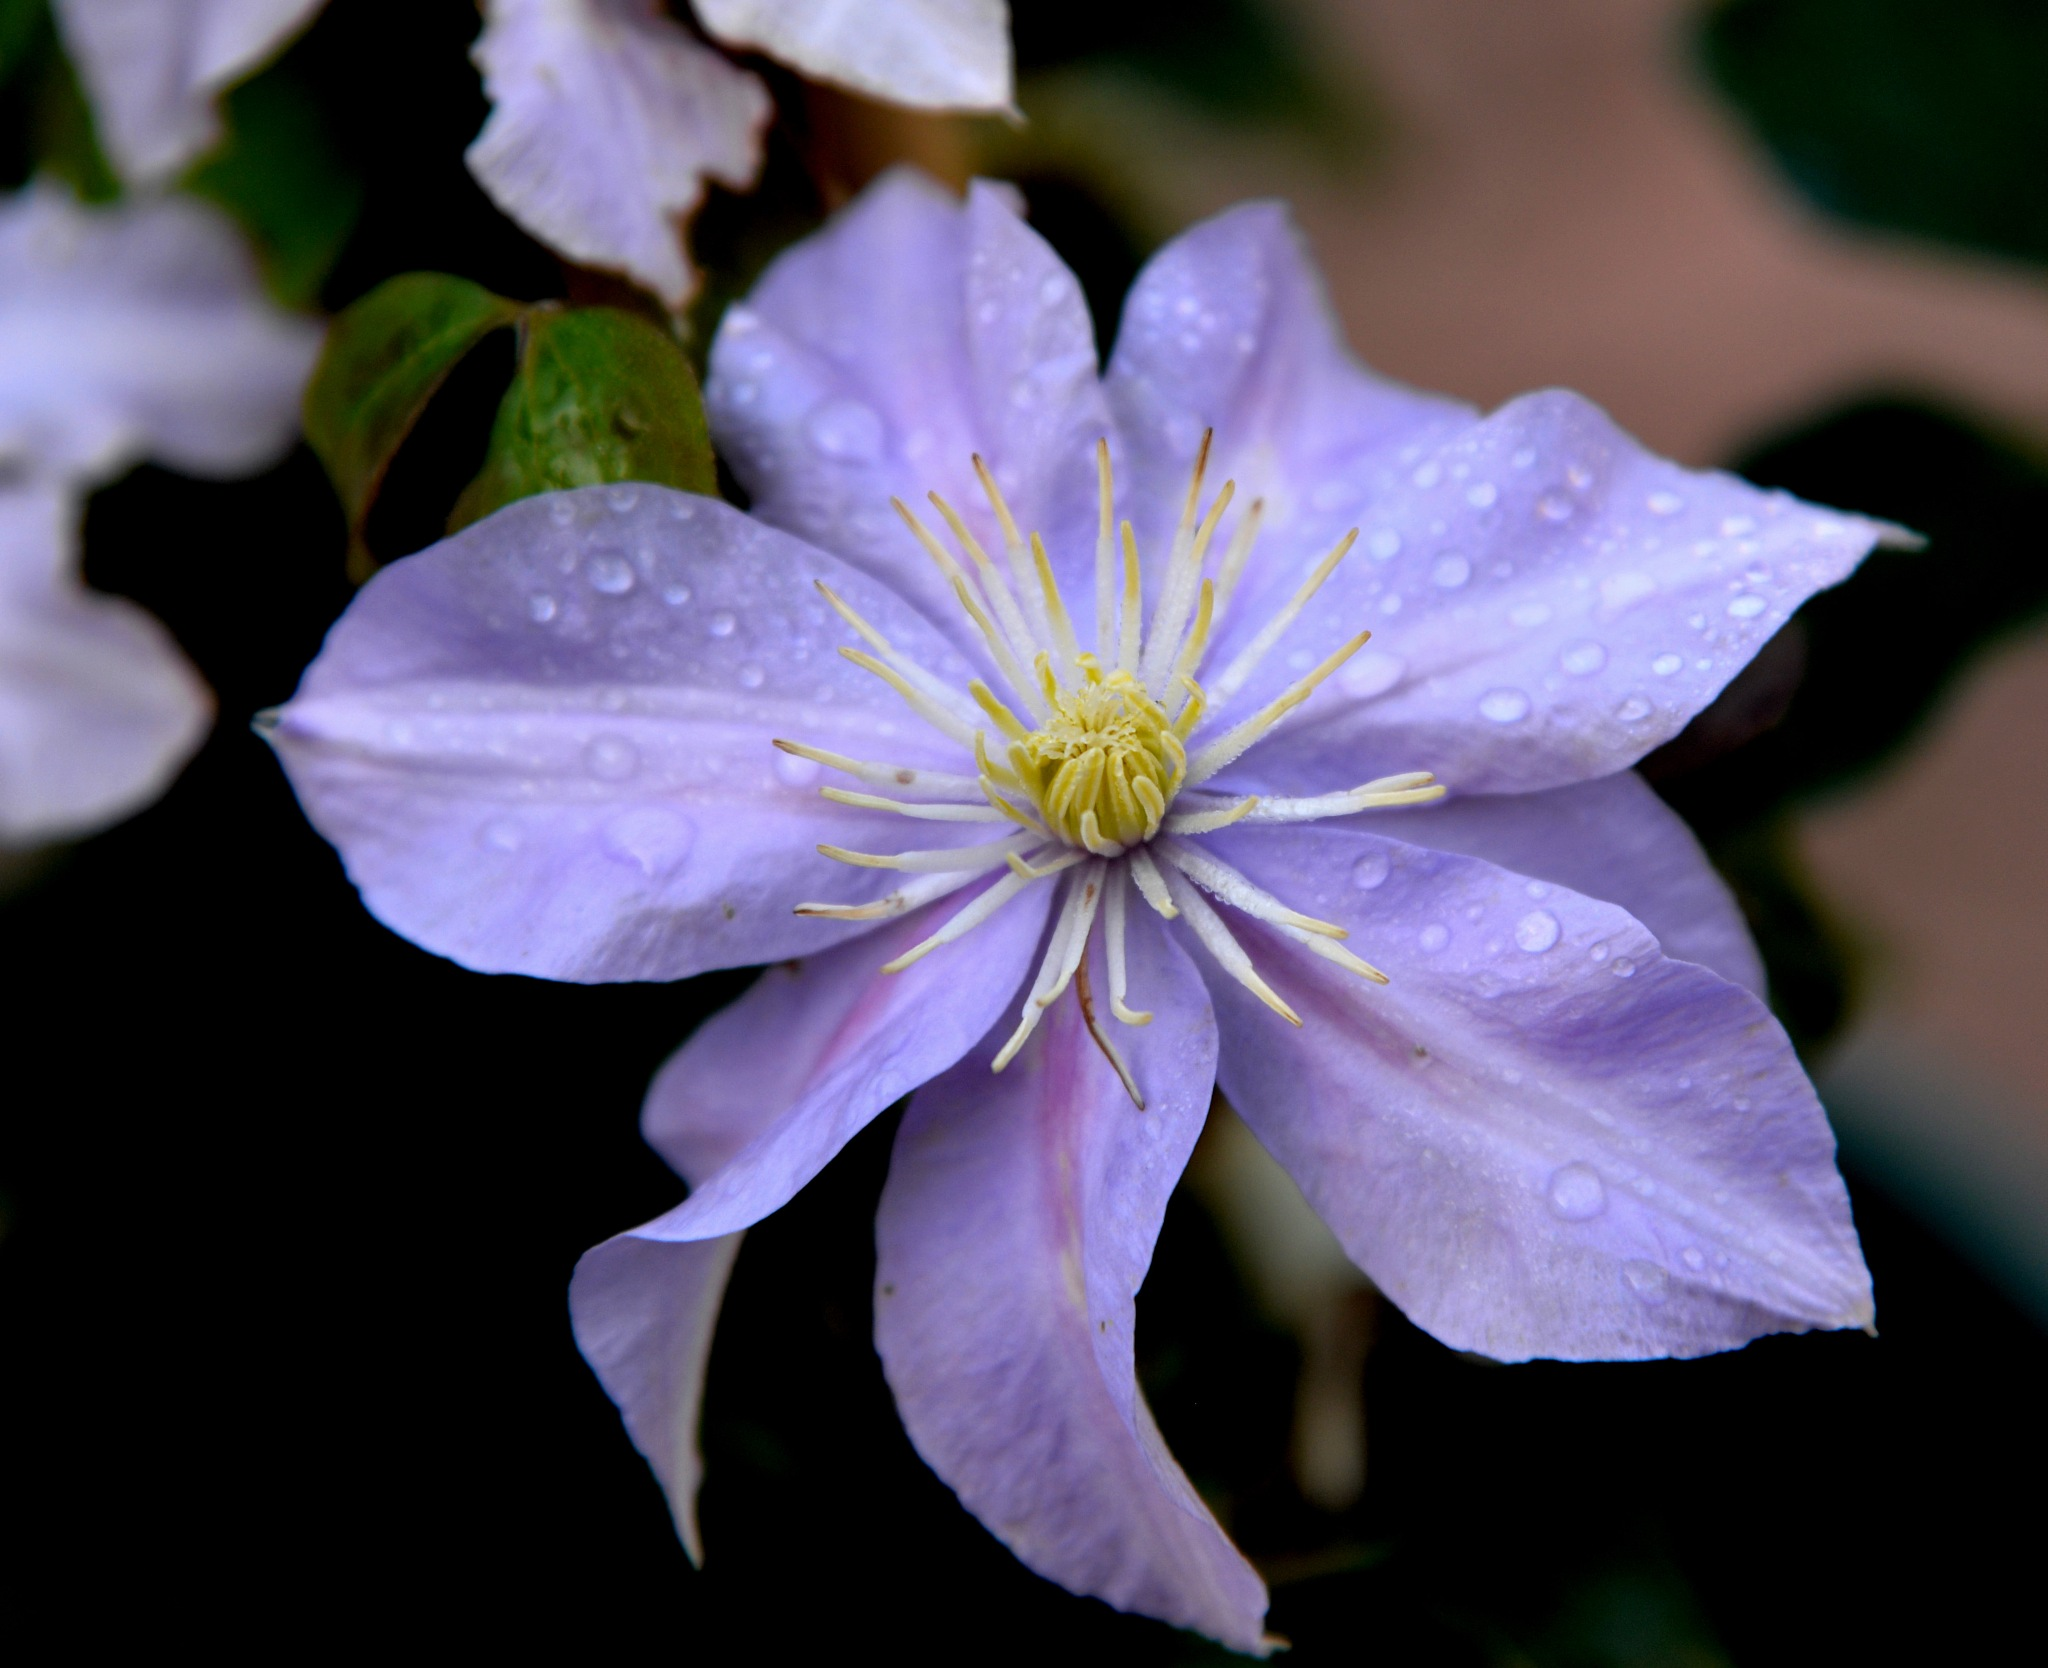 Winter Clematis by trevvie_uk